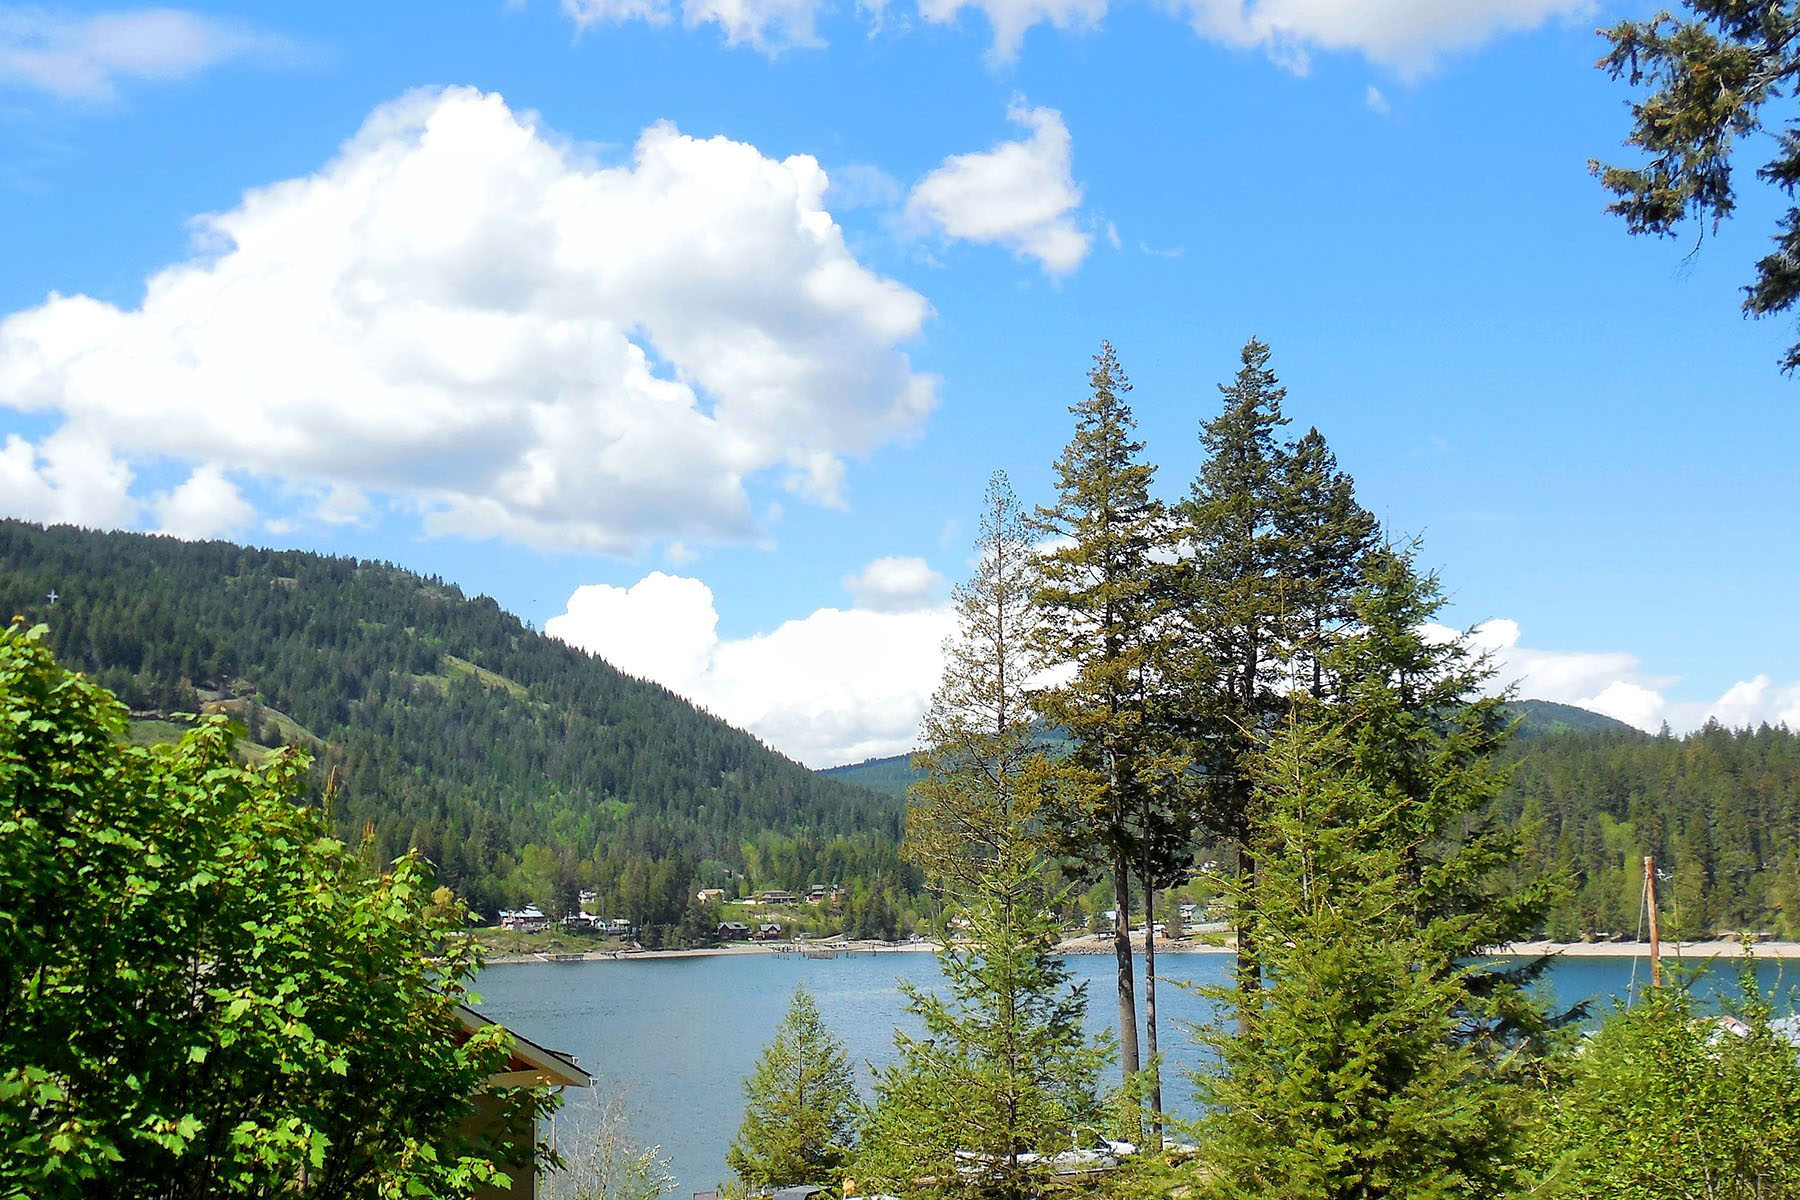 Land for Sale at Garfield Bay Paradise Lot 8 Hoffman Ave, Sagle, Idaho, 83860 United States